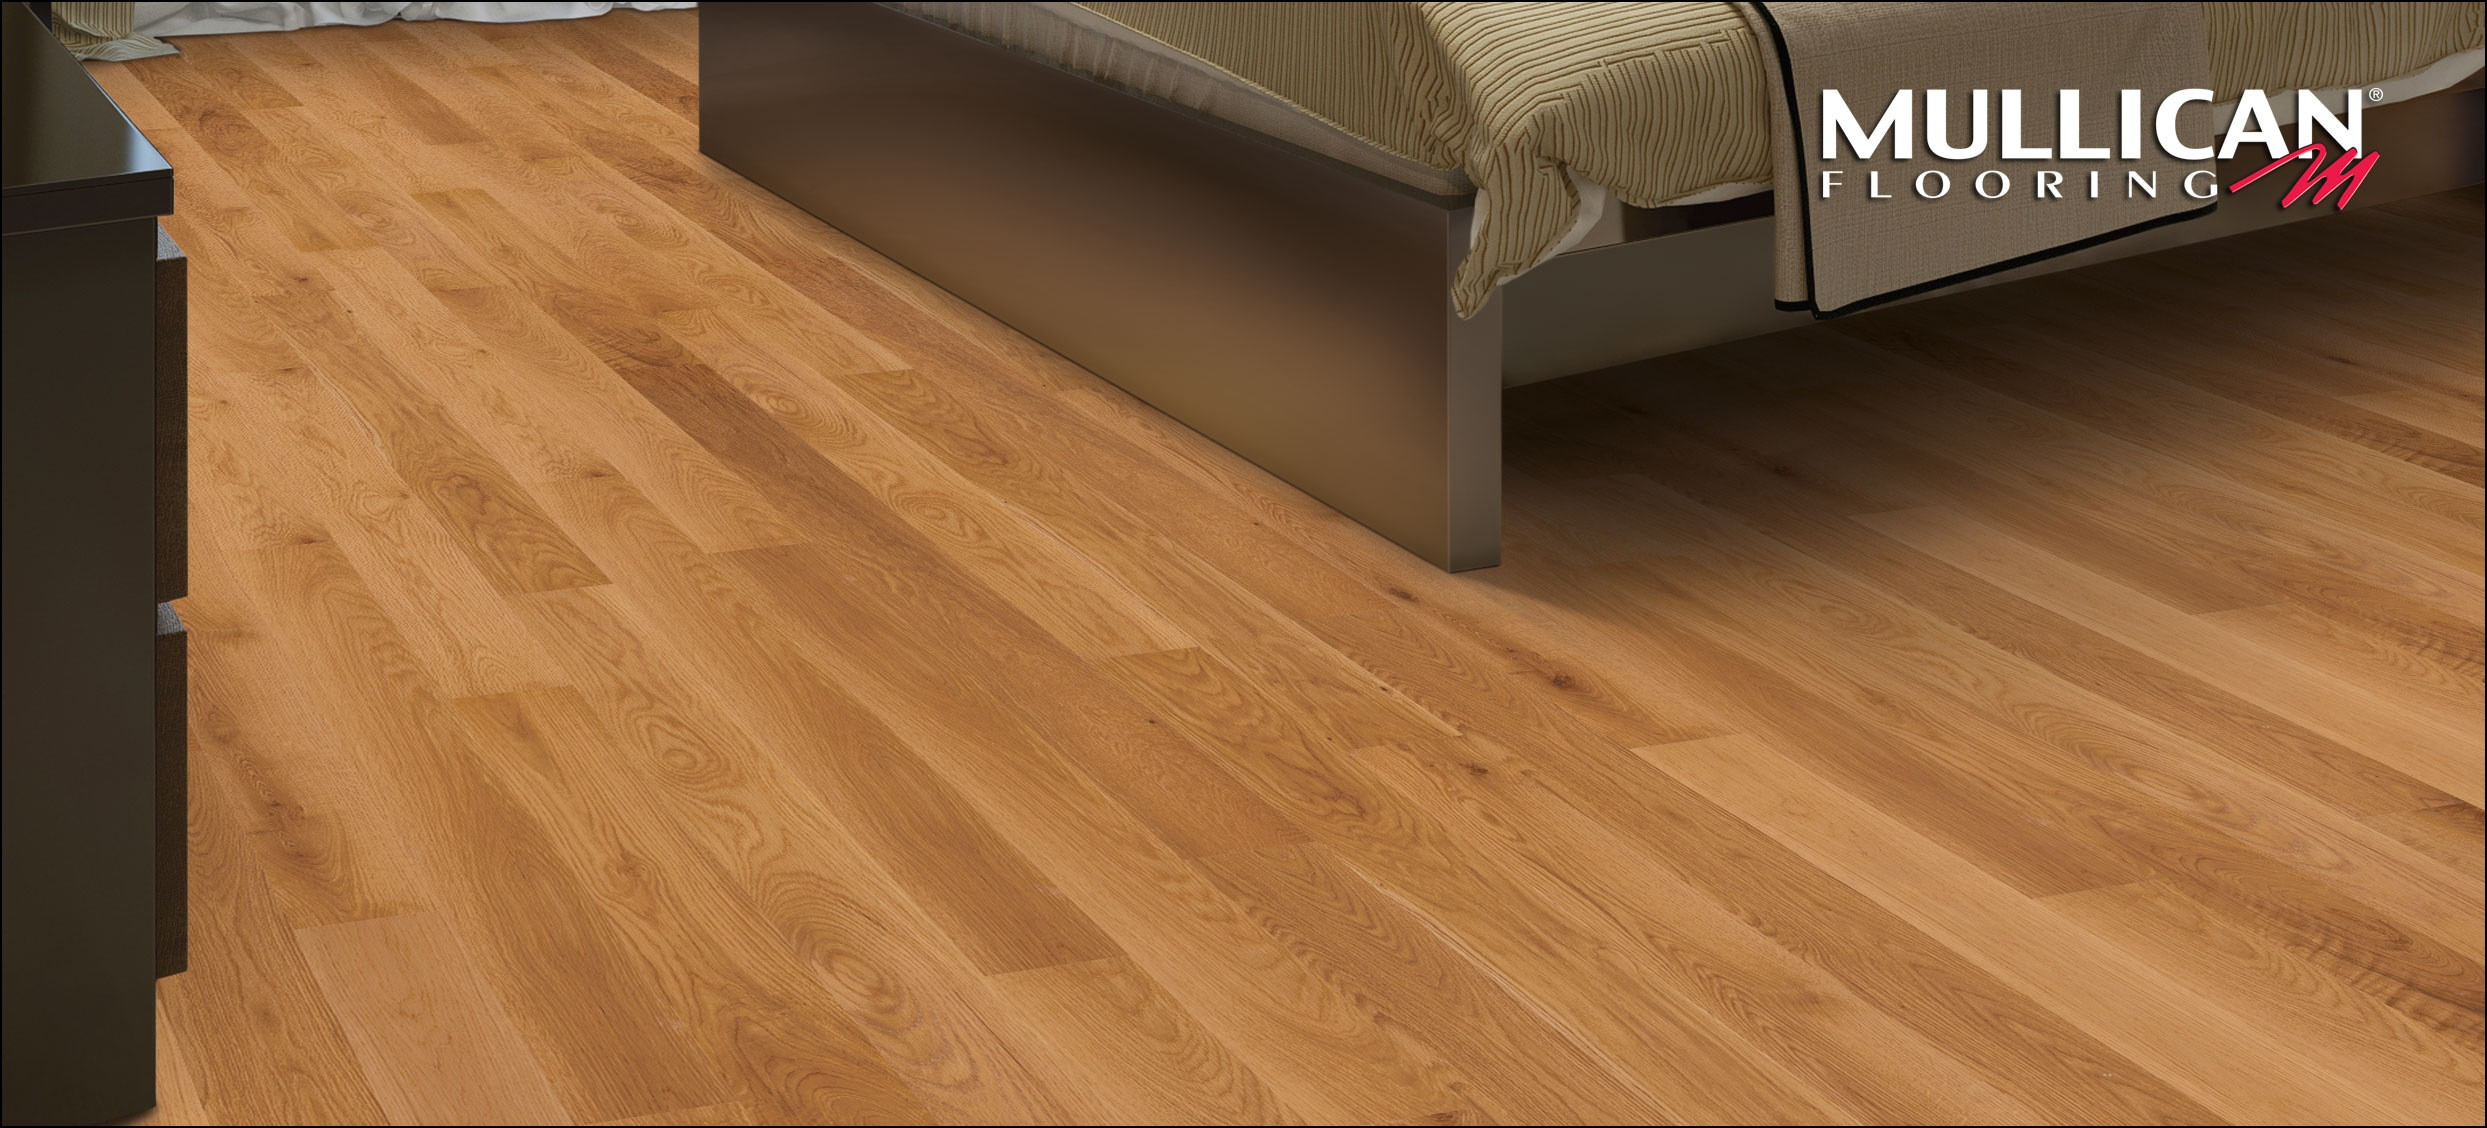 Hardwood Floor Refinishing Nj Reviews Of Hardwood Flooring Suppliers France Flooring Ideas within Hardwood Flooring Installation San Diego Collection Mullican Flooring Home Of Hardwood Flooring Installation San Diego